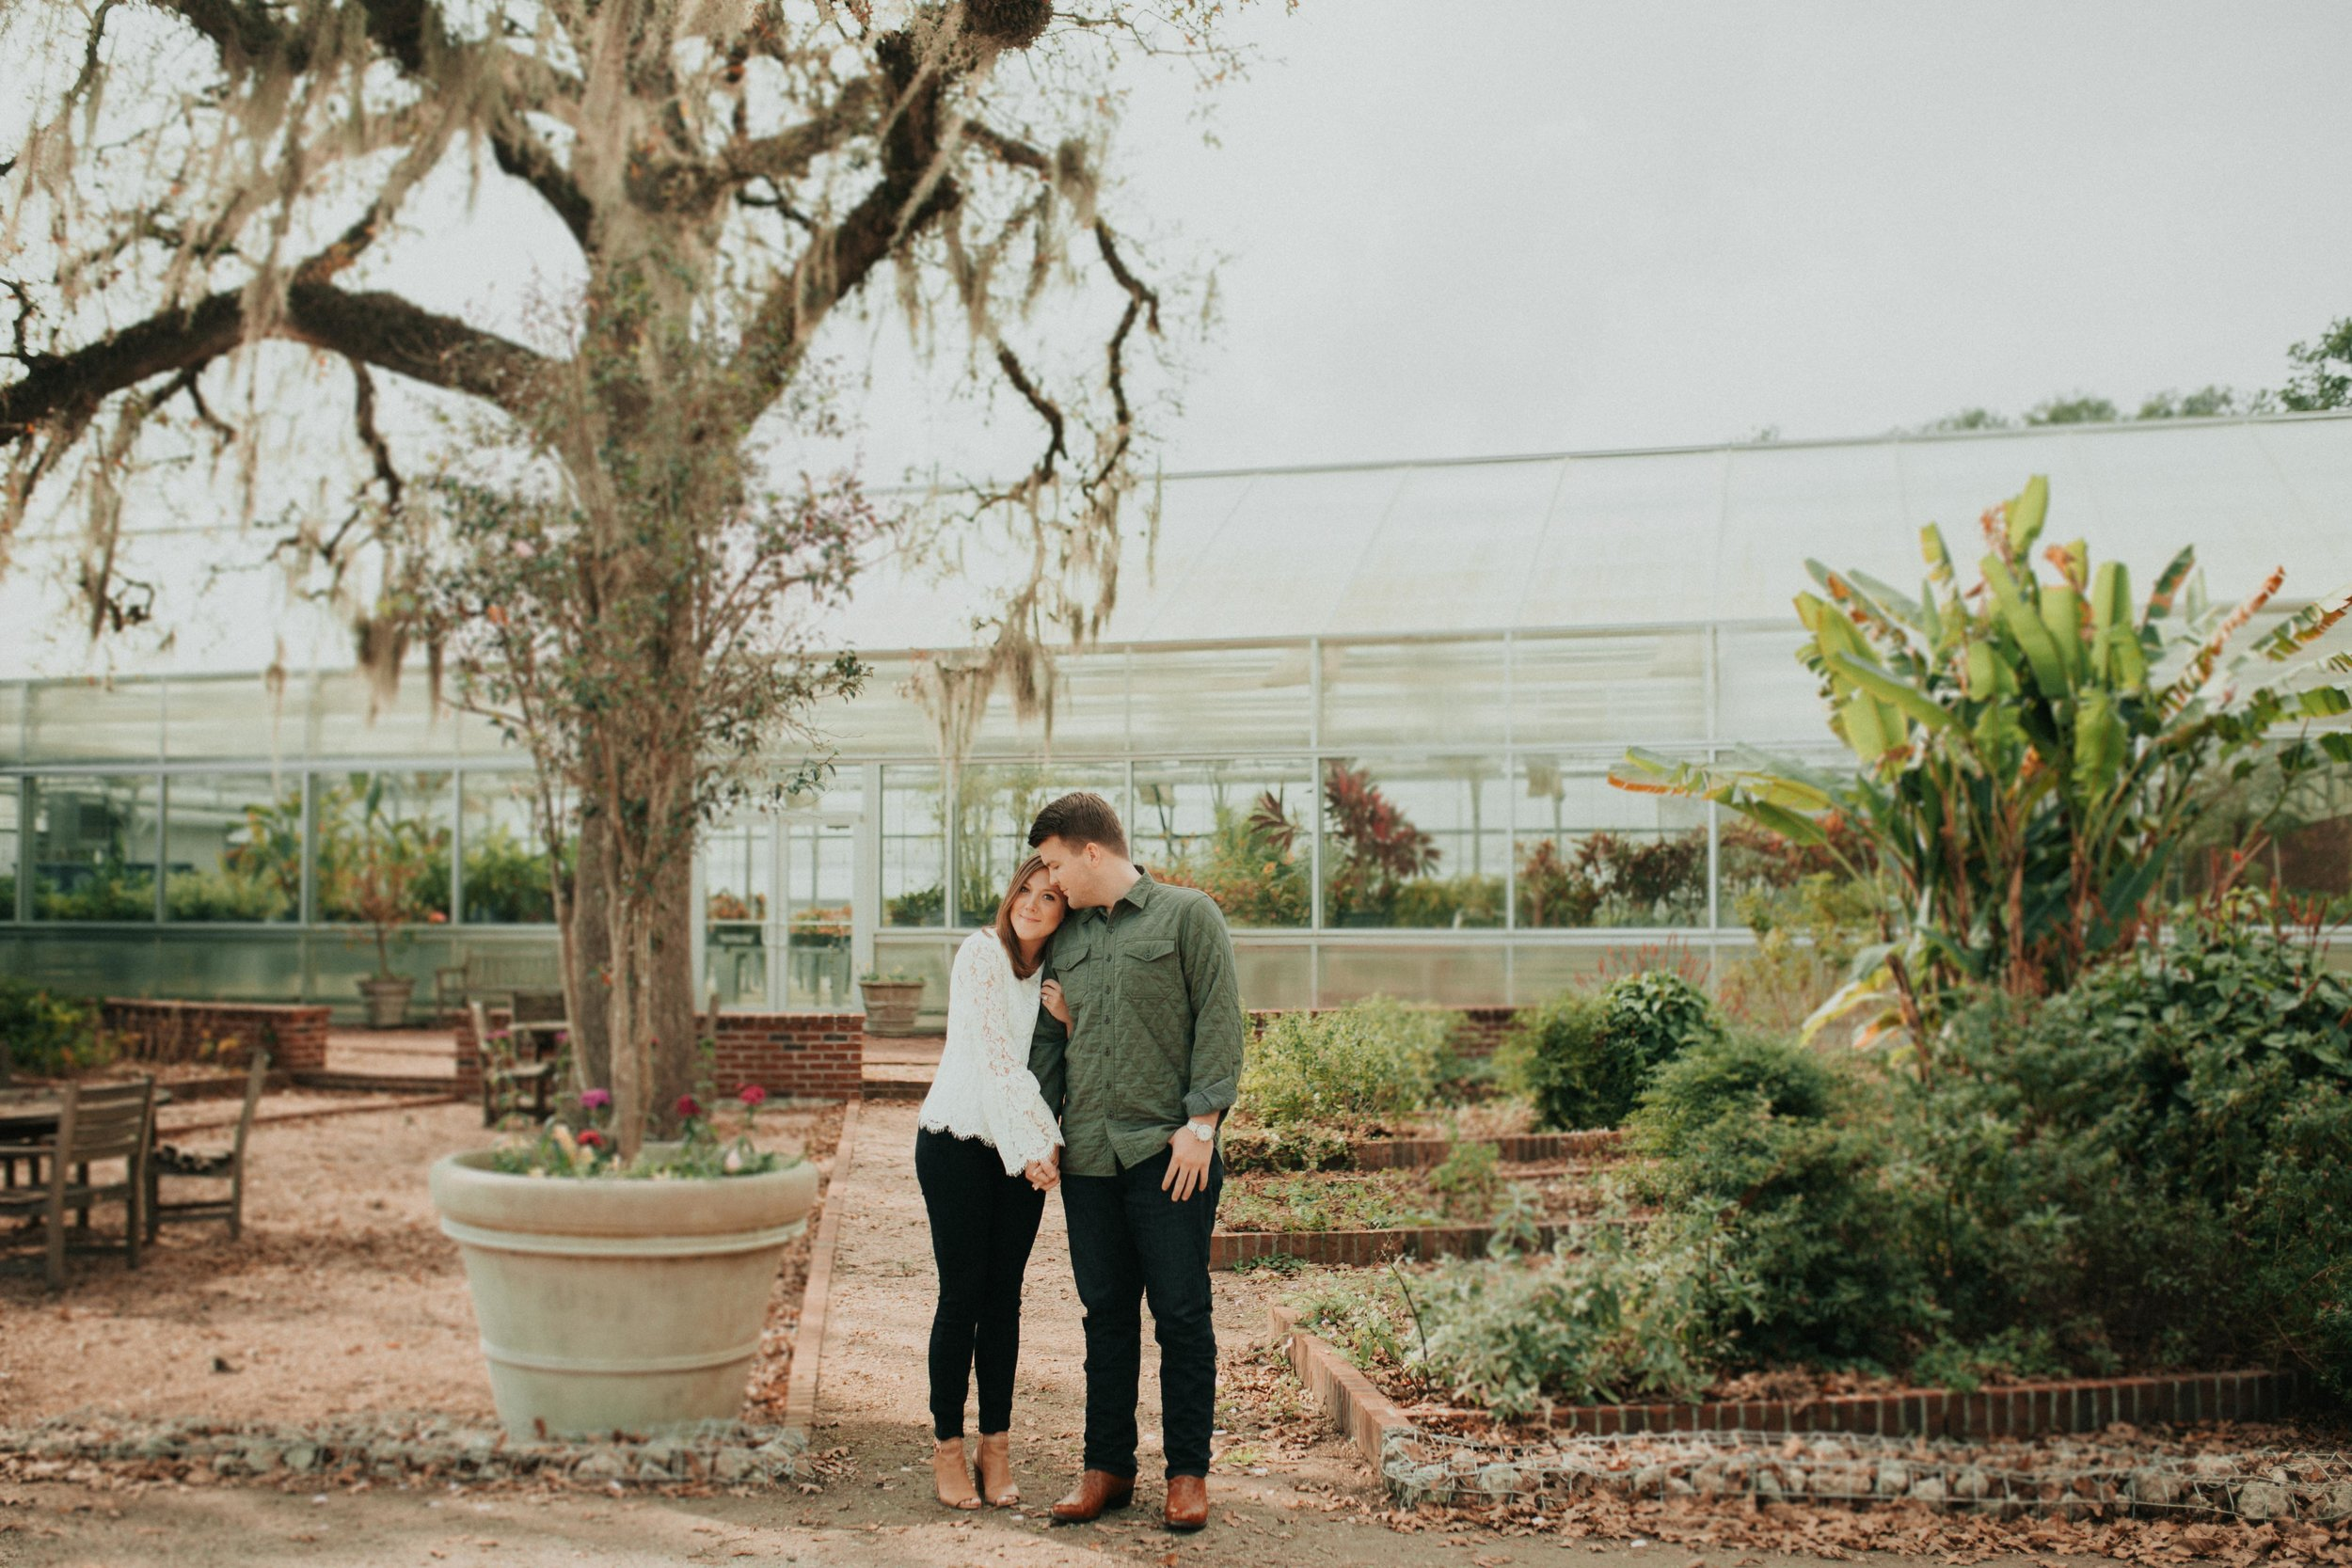 Memorial Park Engagement Session Houston Texas - Madeleine Frost-1113.jpg